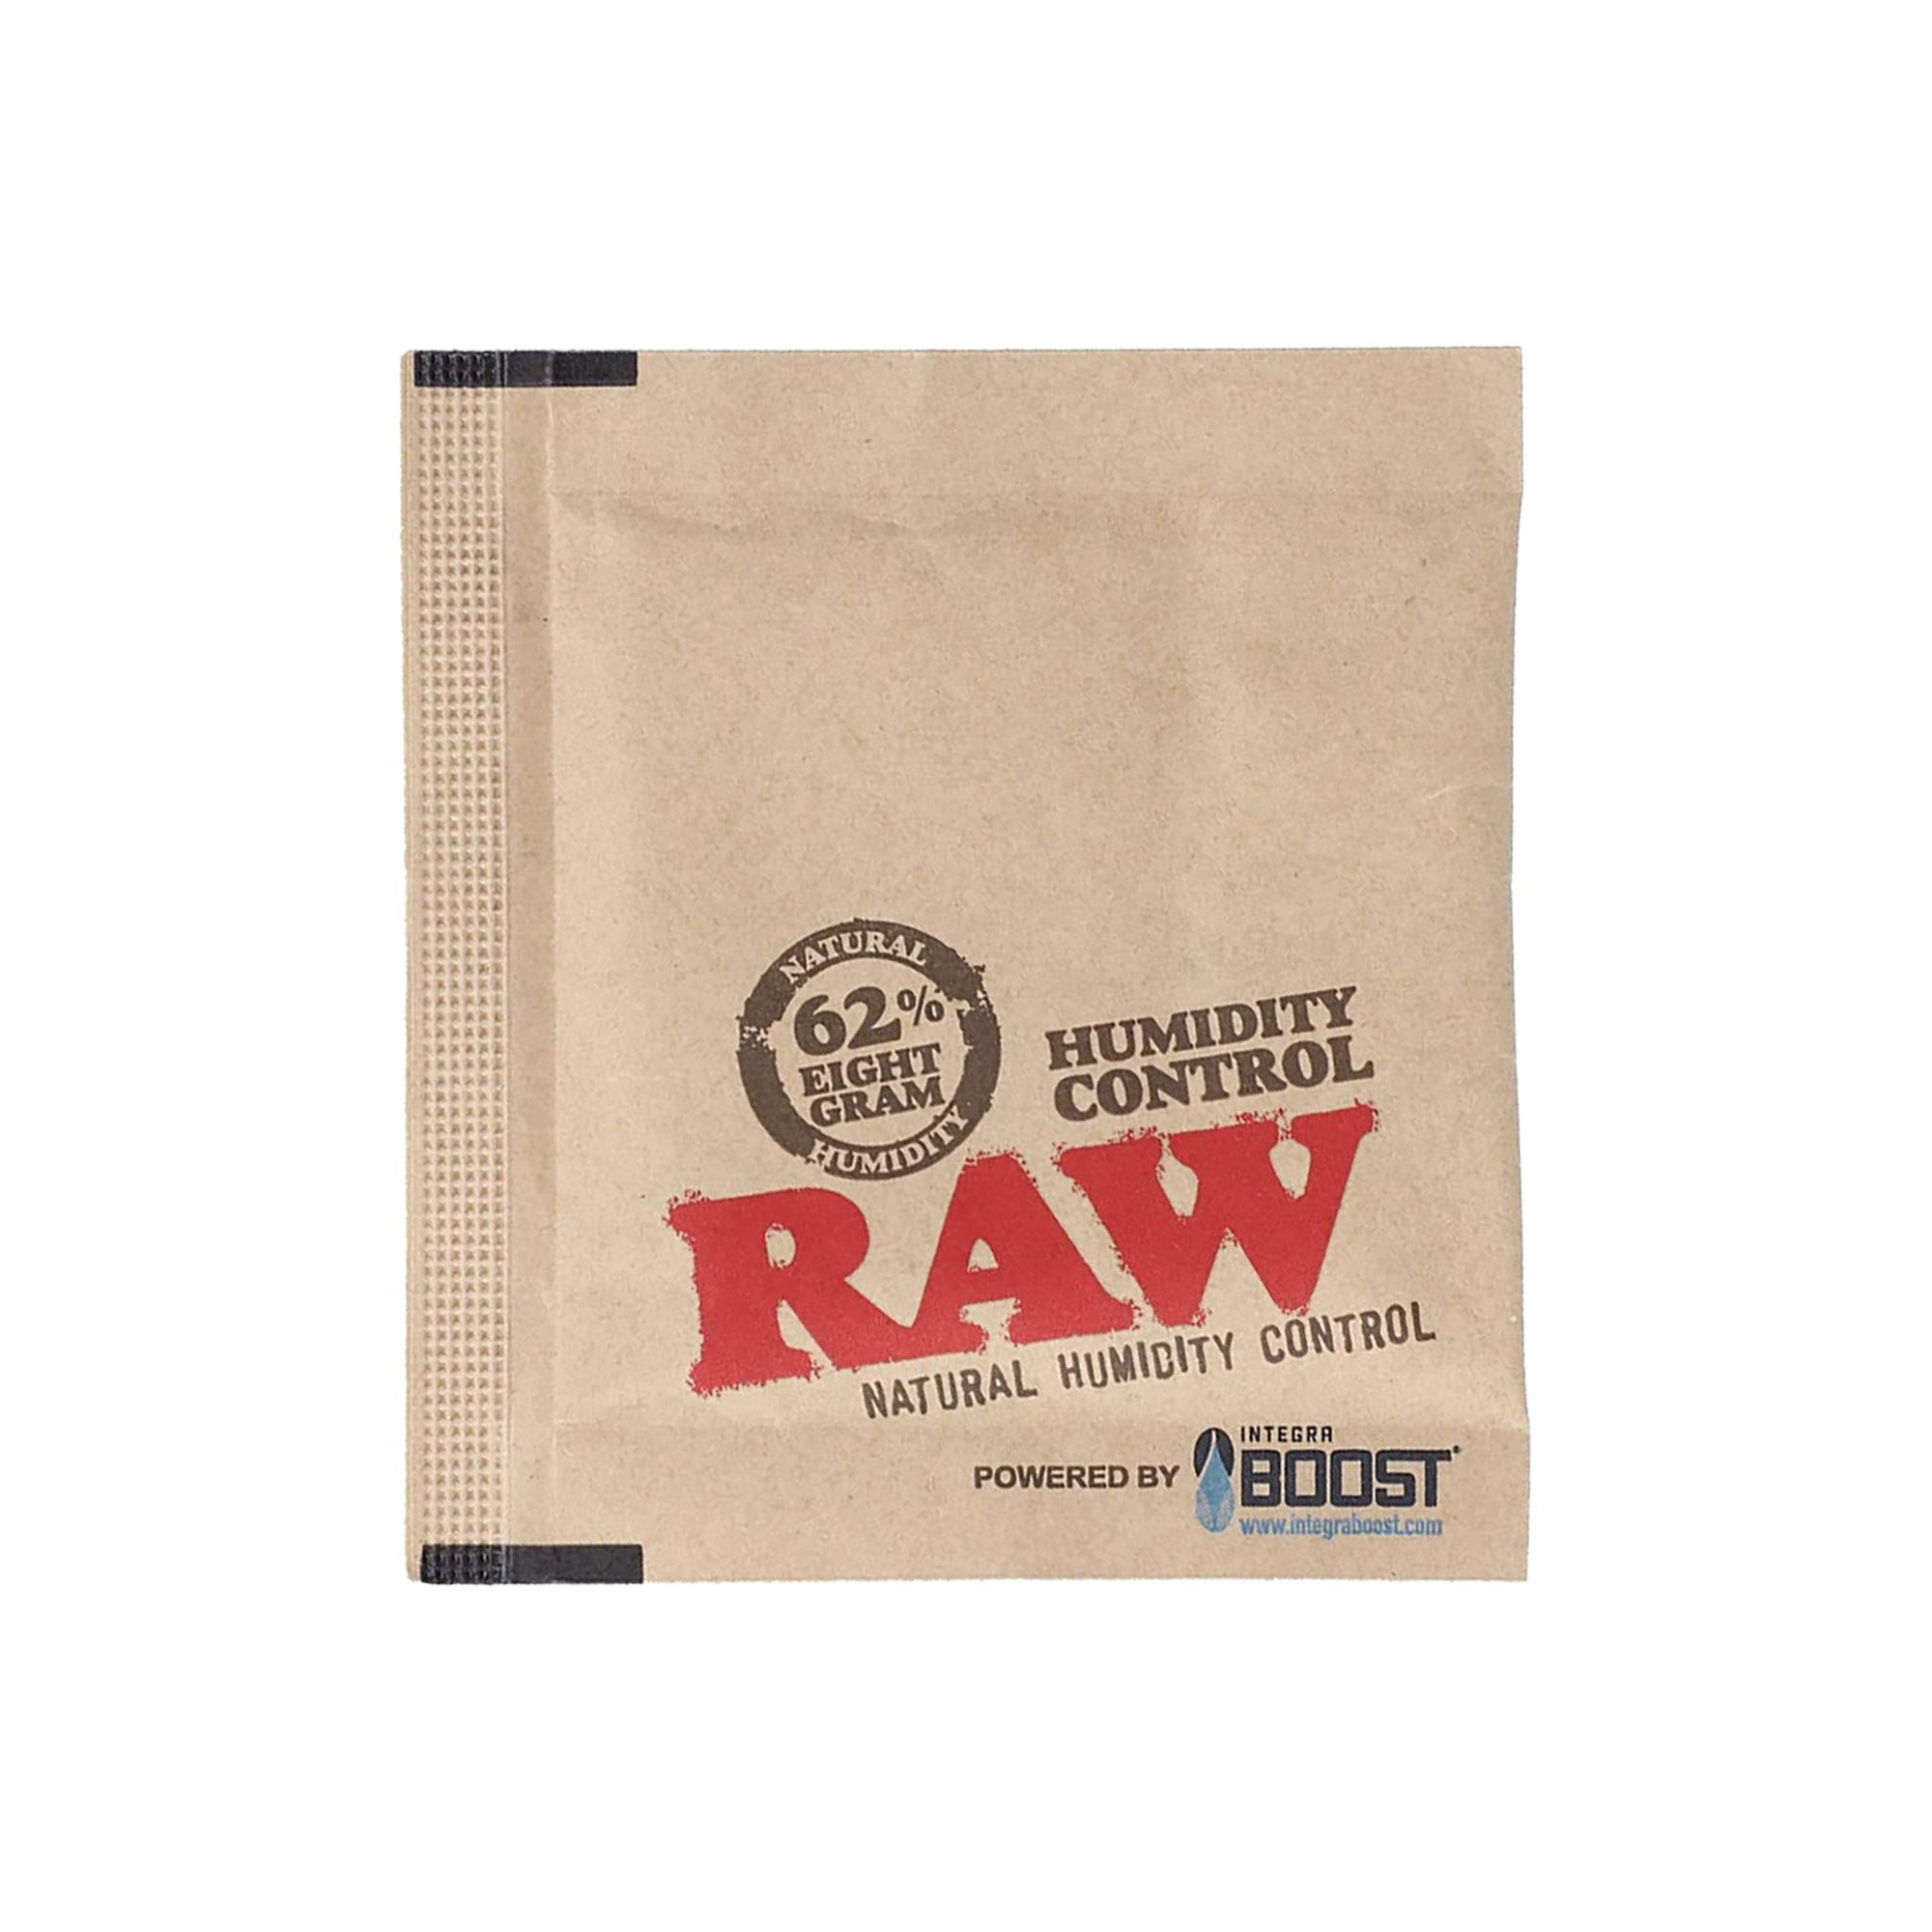 Beige 8g square pack with black accents of RAW X Integra 62% humidity control pack smoking accessory sachet of sugar look